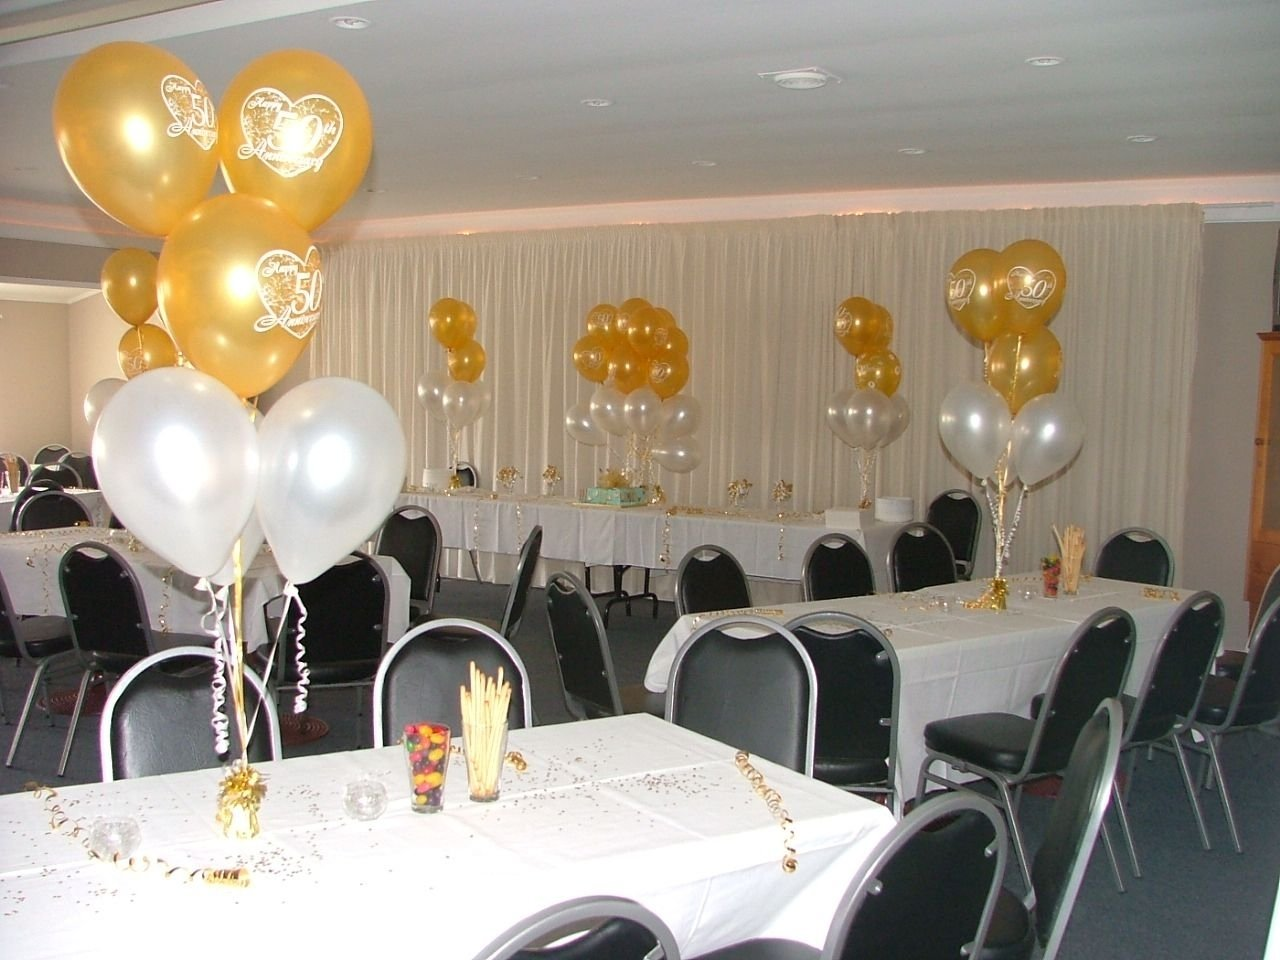 10 Perfect Ideas For 50Th Wedding Anniversary Party wedding decorations wedding decorations ideas anniversary 2 2020